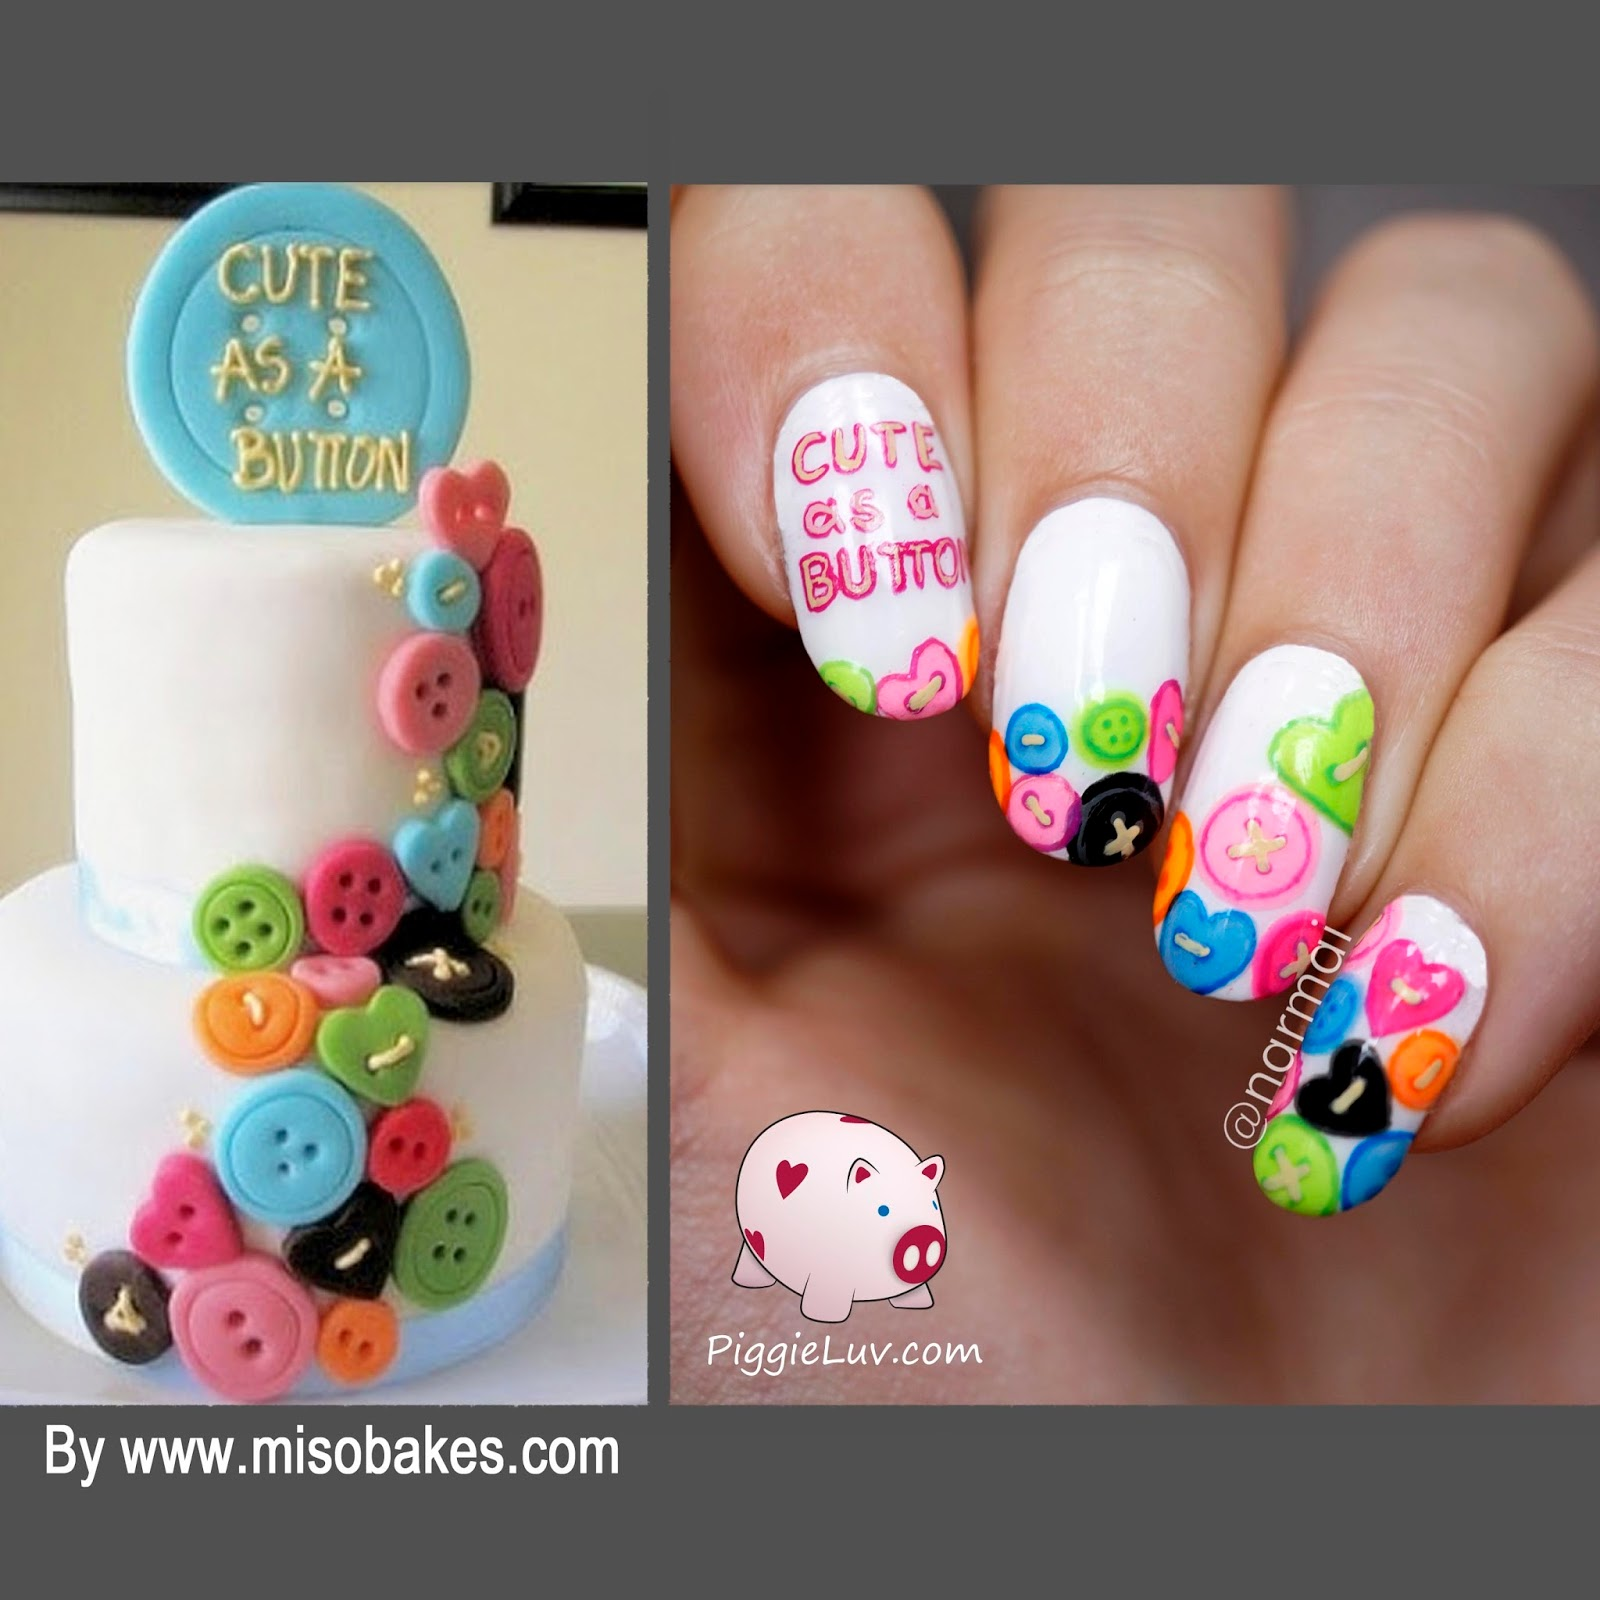 PiggieLuv: Nail art inspired by a cake by Miso Bakes